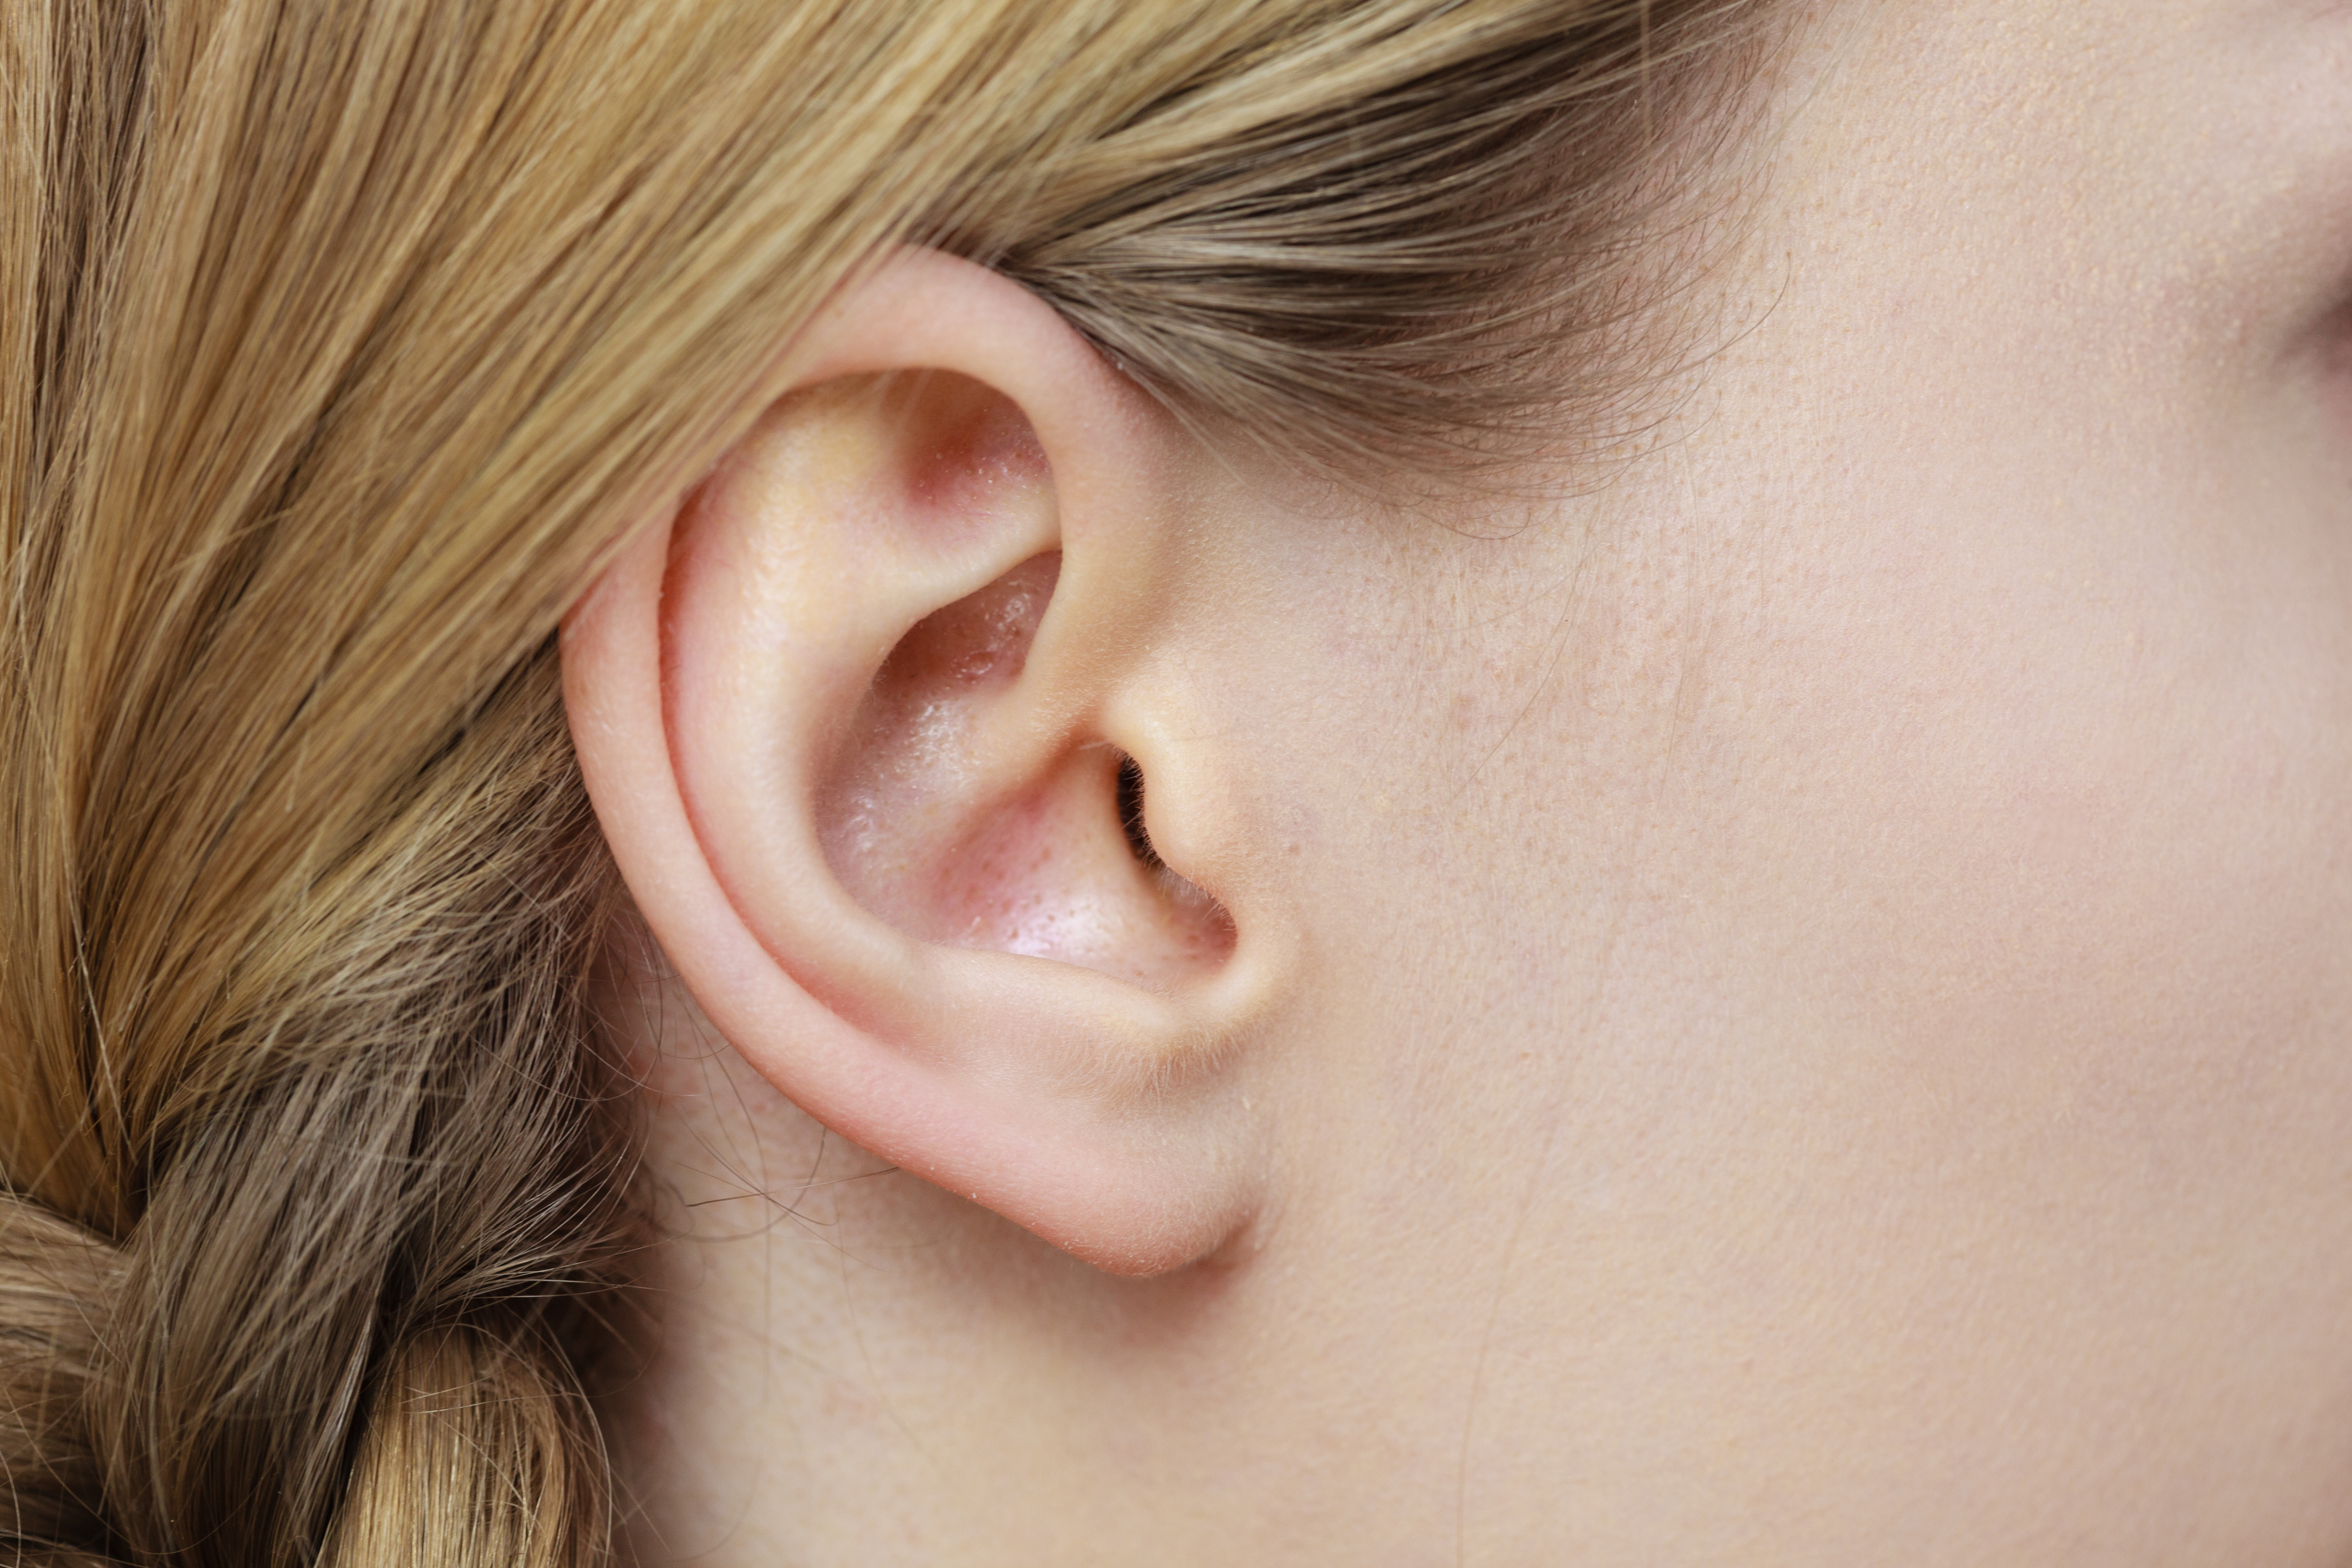 Yellow or White Ear Bump Symptoms, Causes & Common Questions | Buoy